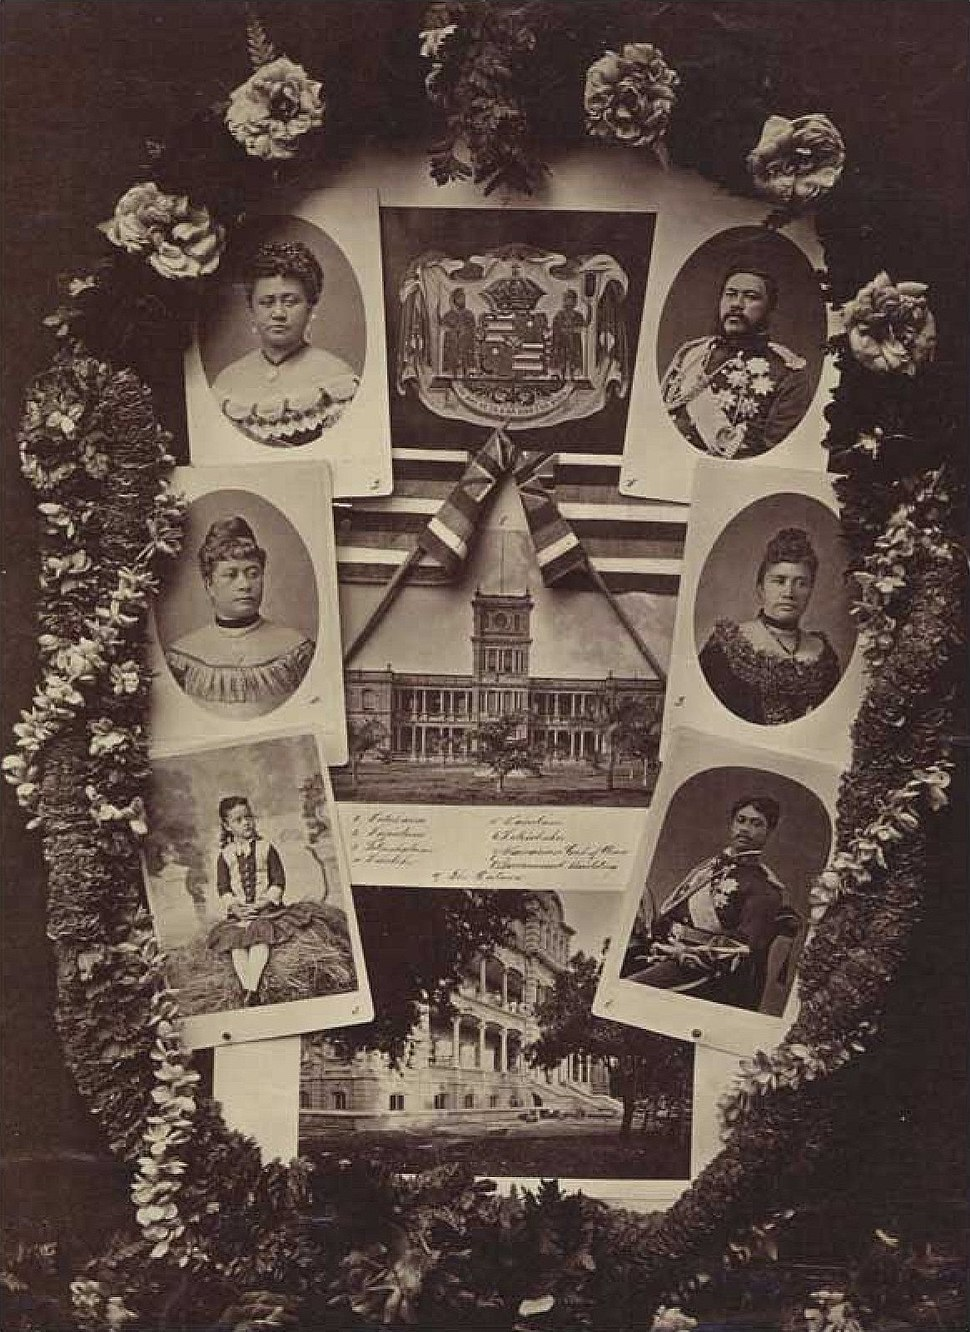 Collage of Kalakaua Dynasty